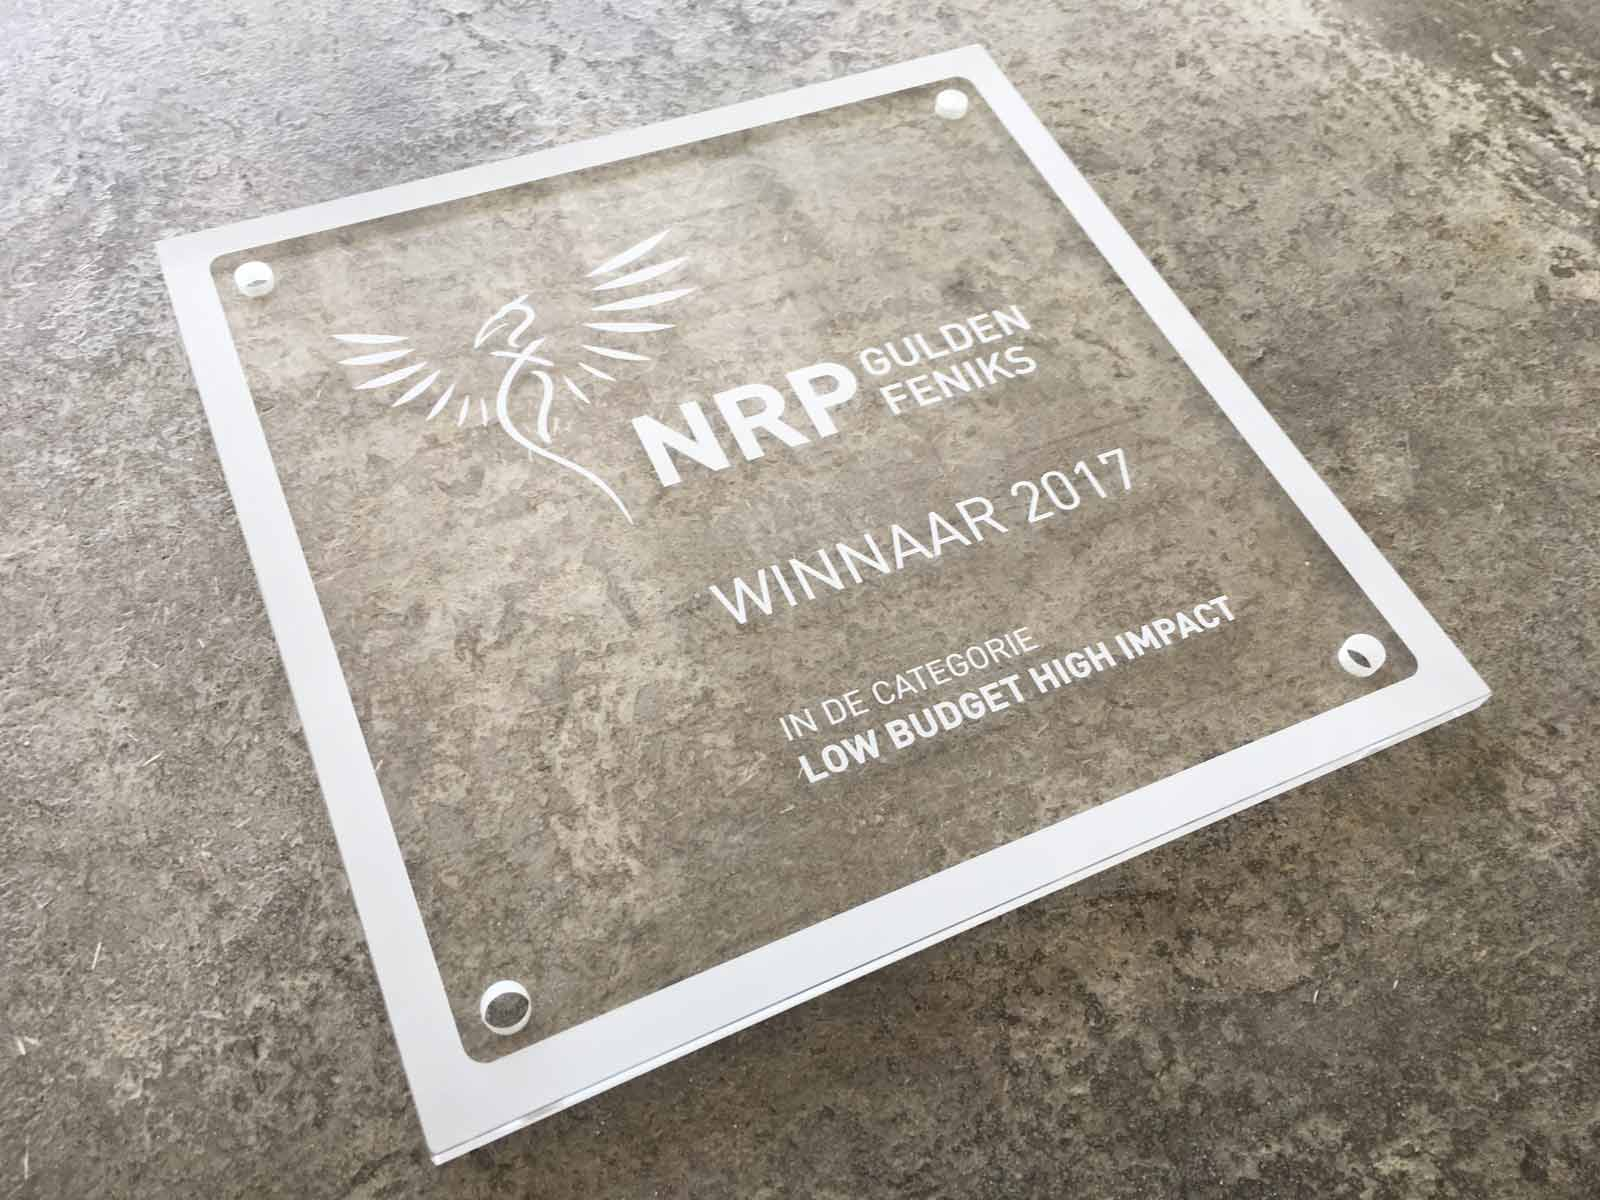 Ru Paré Community wins NRP Gulden Feniks 'Low Budget High Impact'